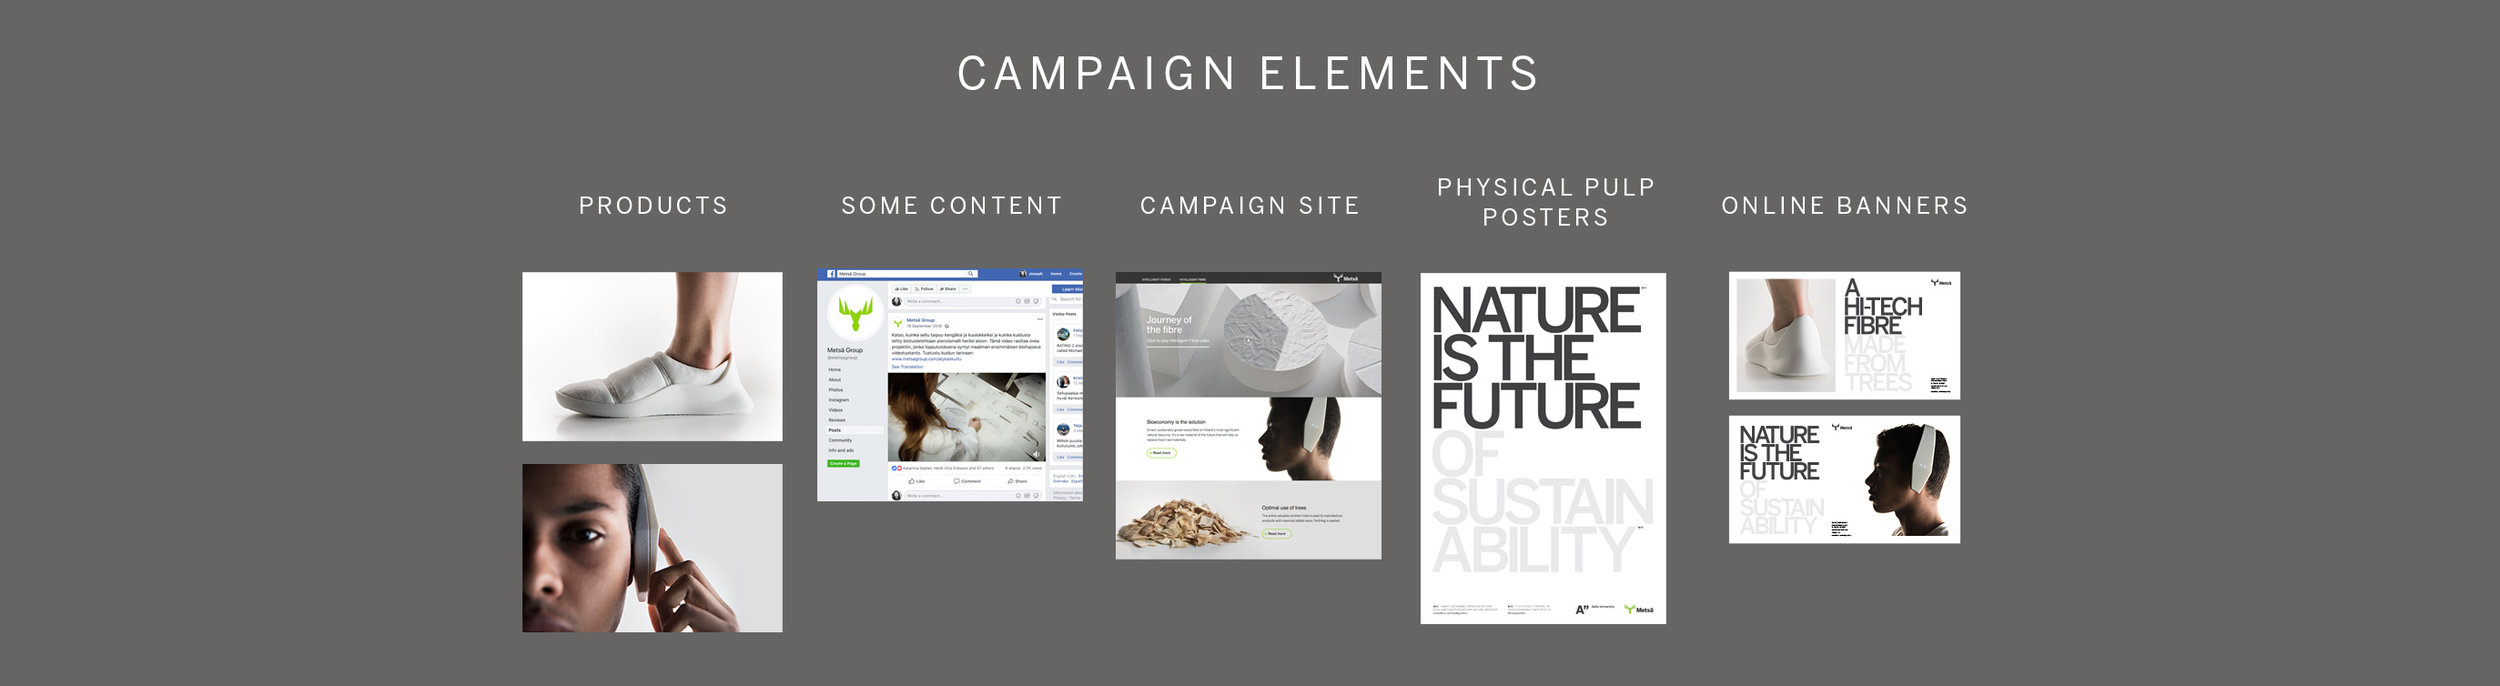 campaign-elements-2.jpg